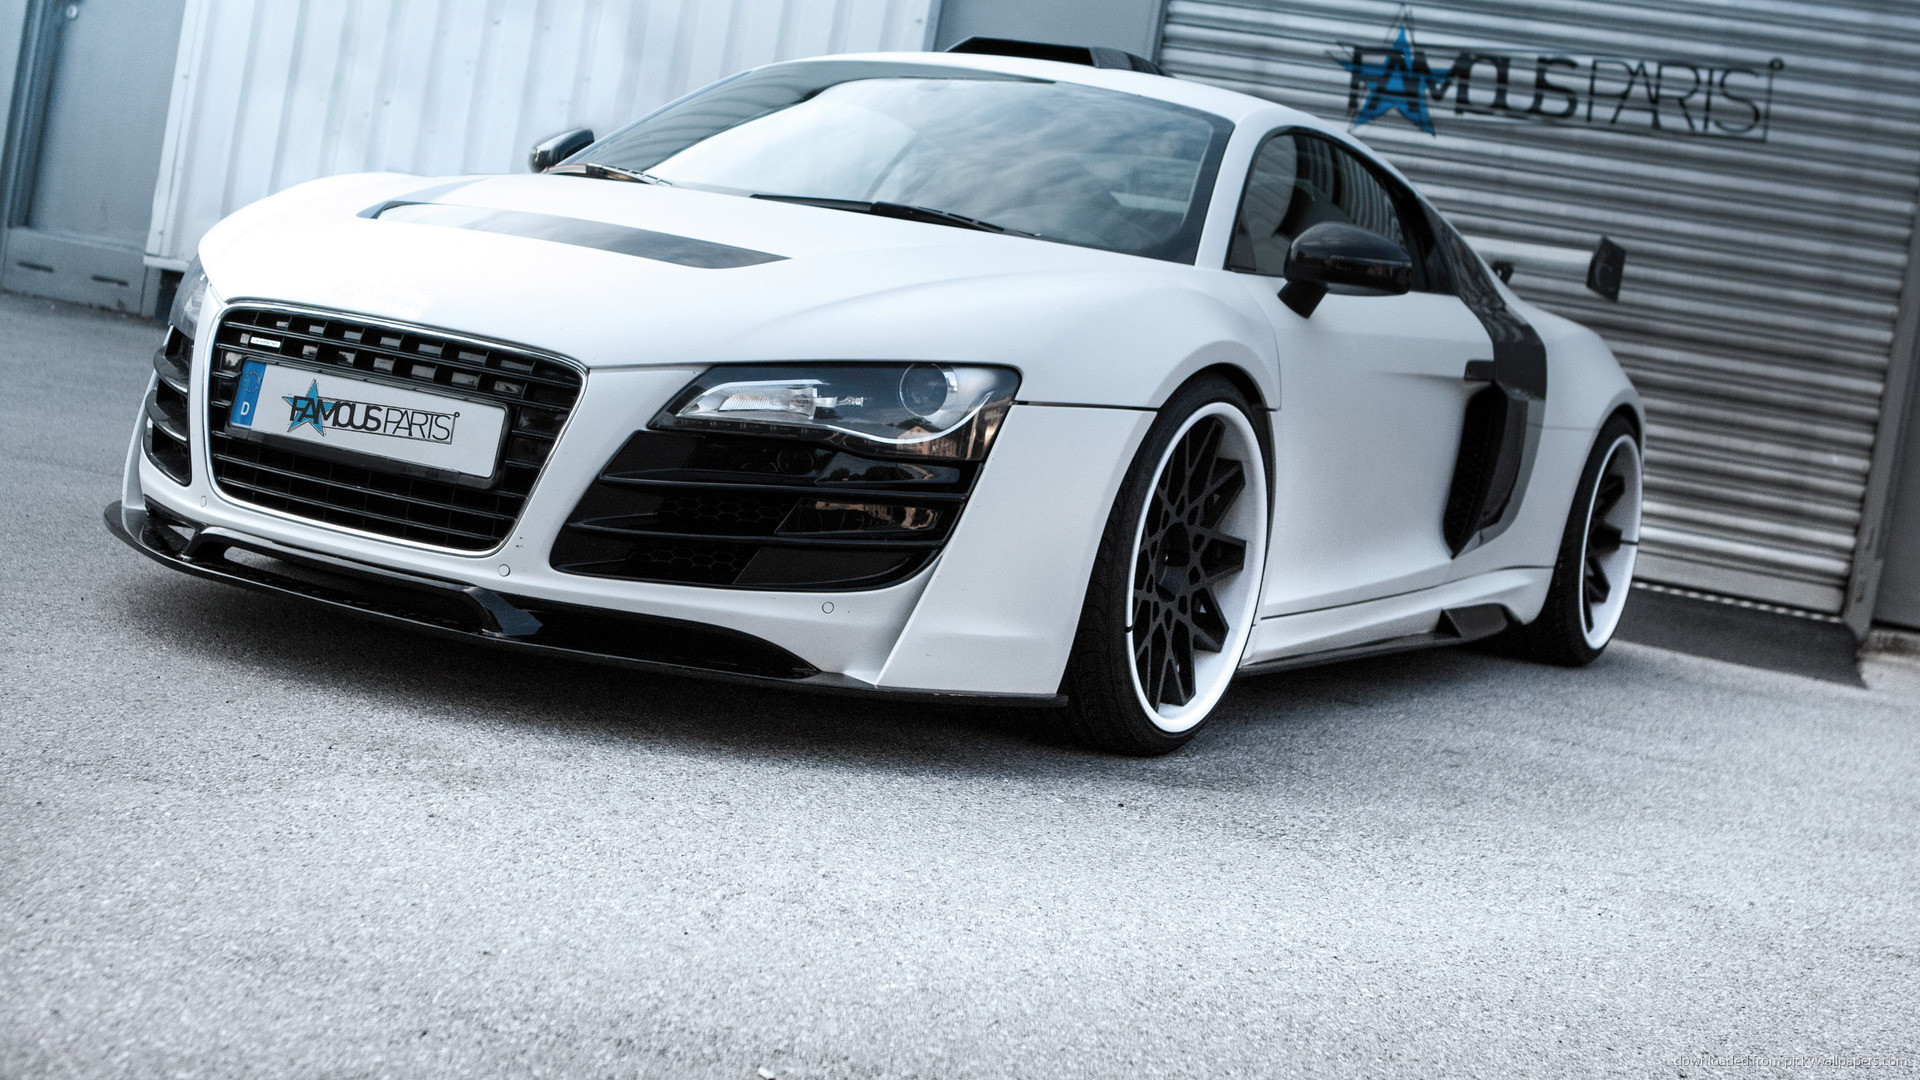 Famous Parts Audi R8 Wide Body PD GT-850 for 1920×1080